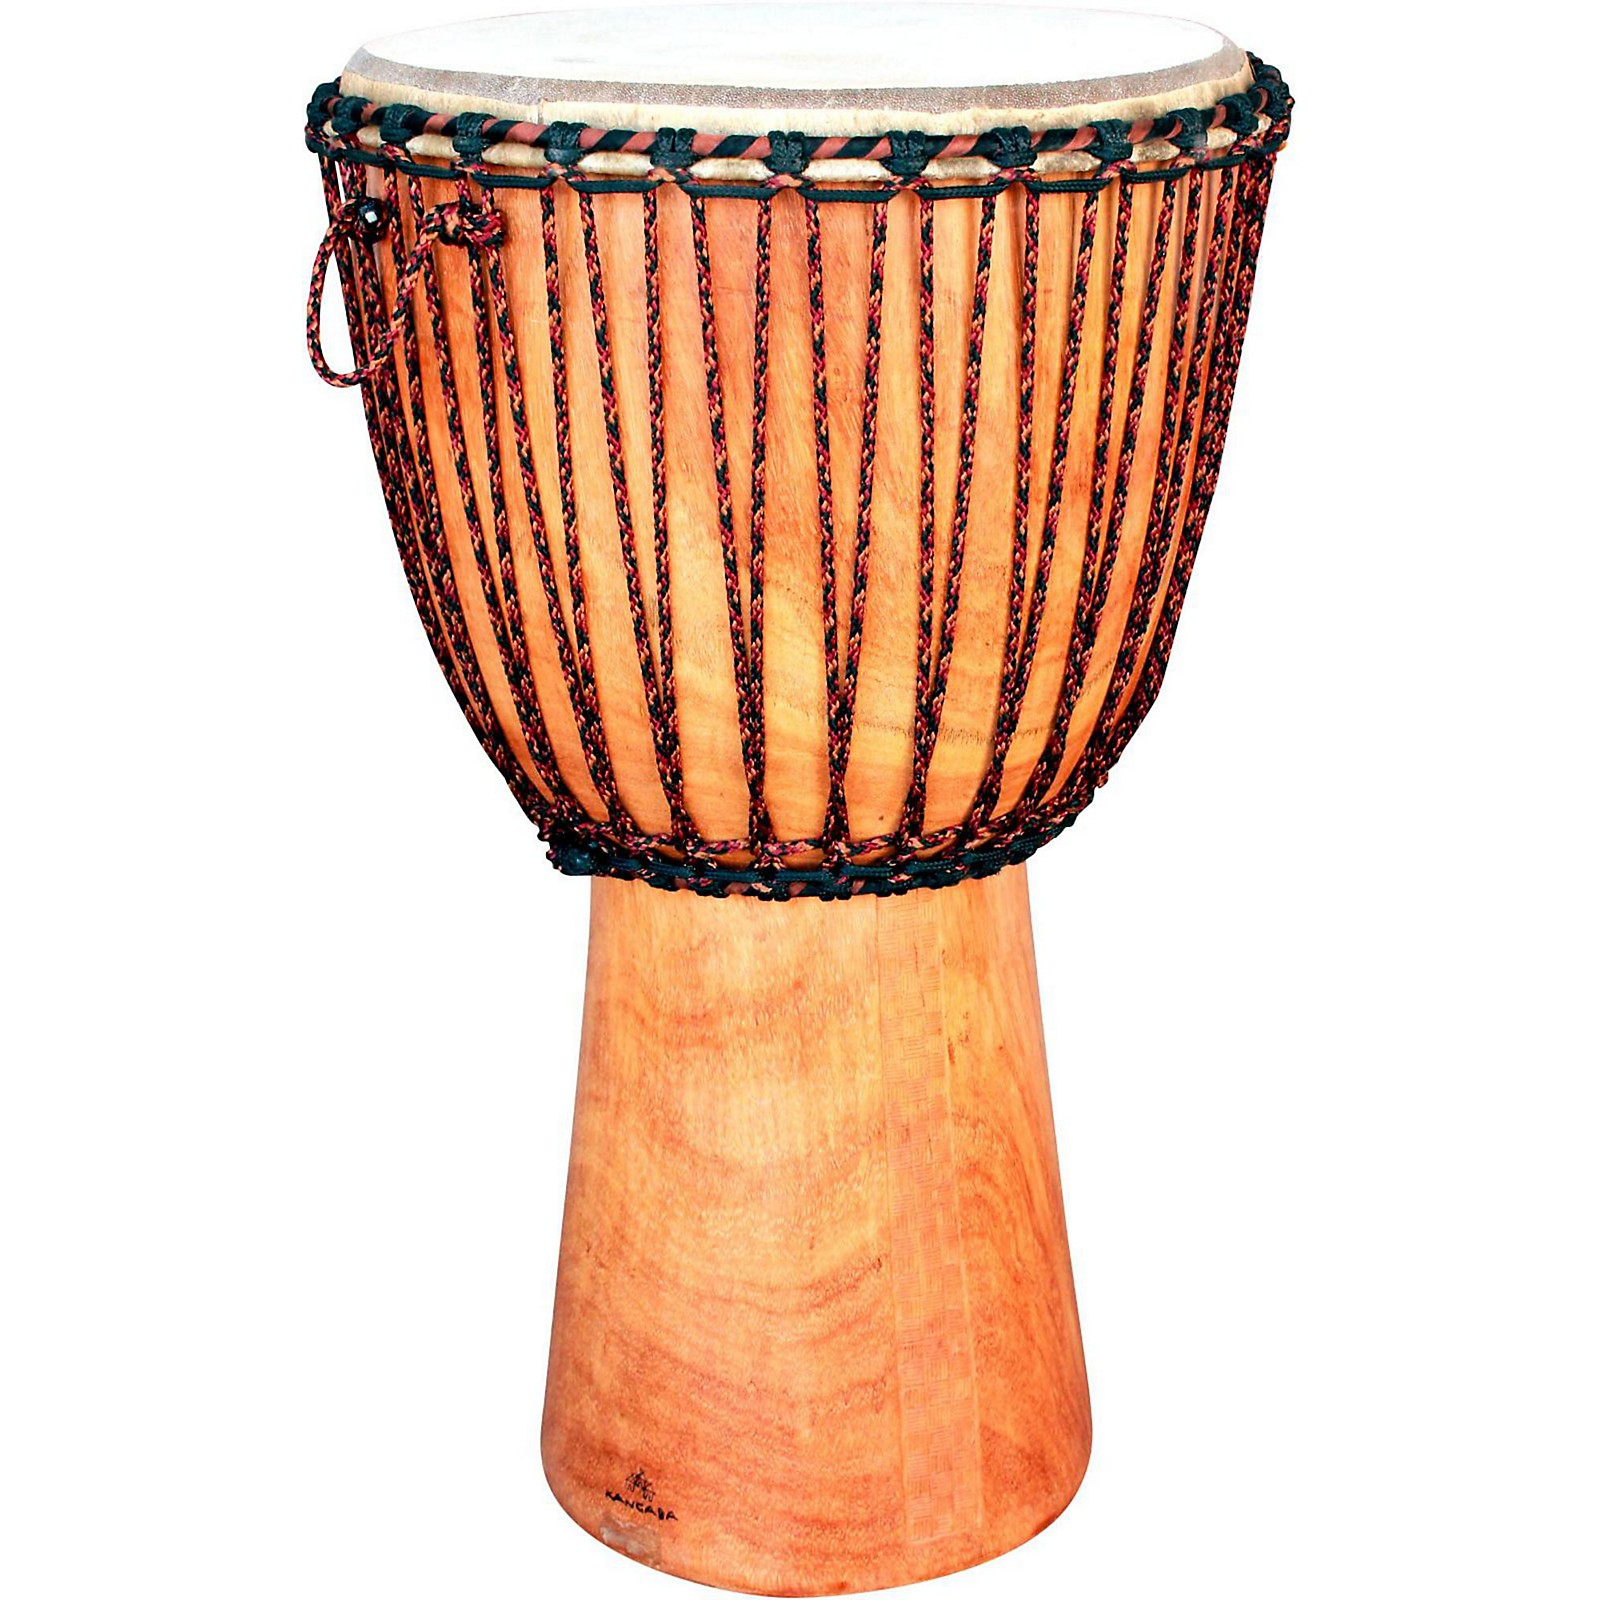 Overseas Connection 13 in. Mali Djembe (Natural)